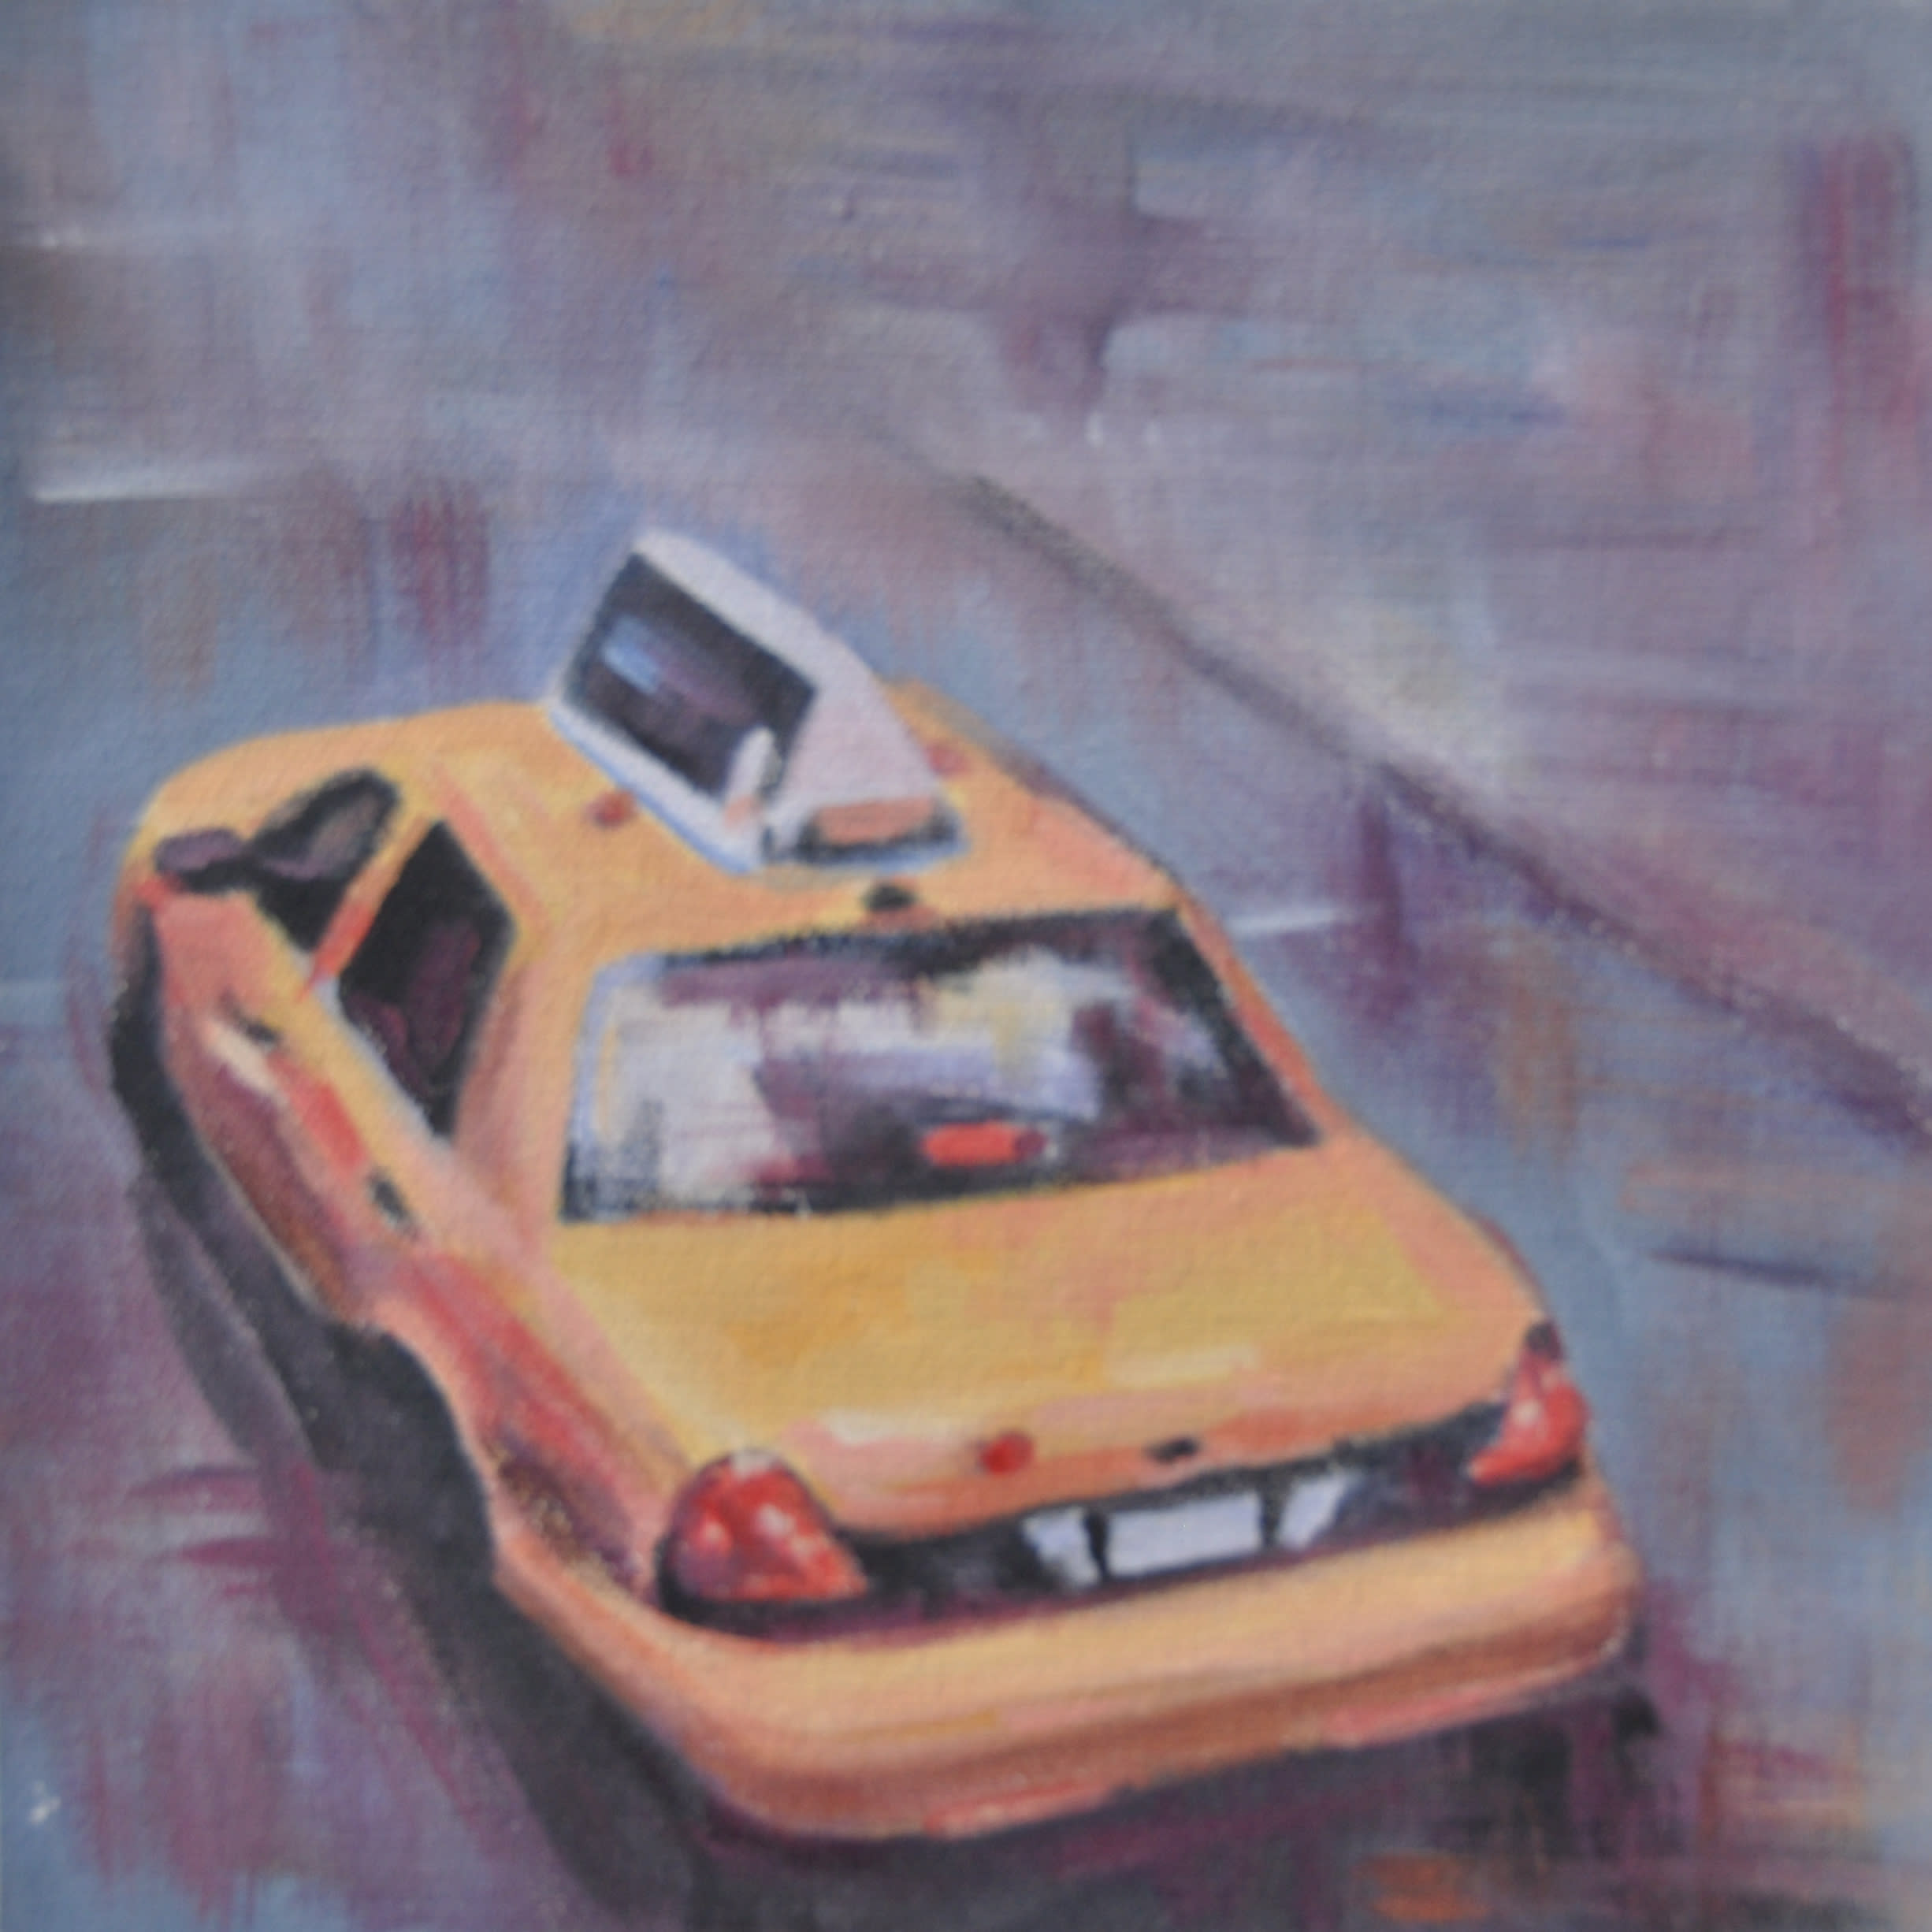 19x19 yellow taxi cab from above by steph fonteyn oaxul0